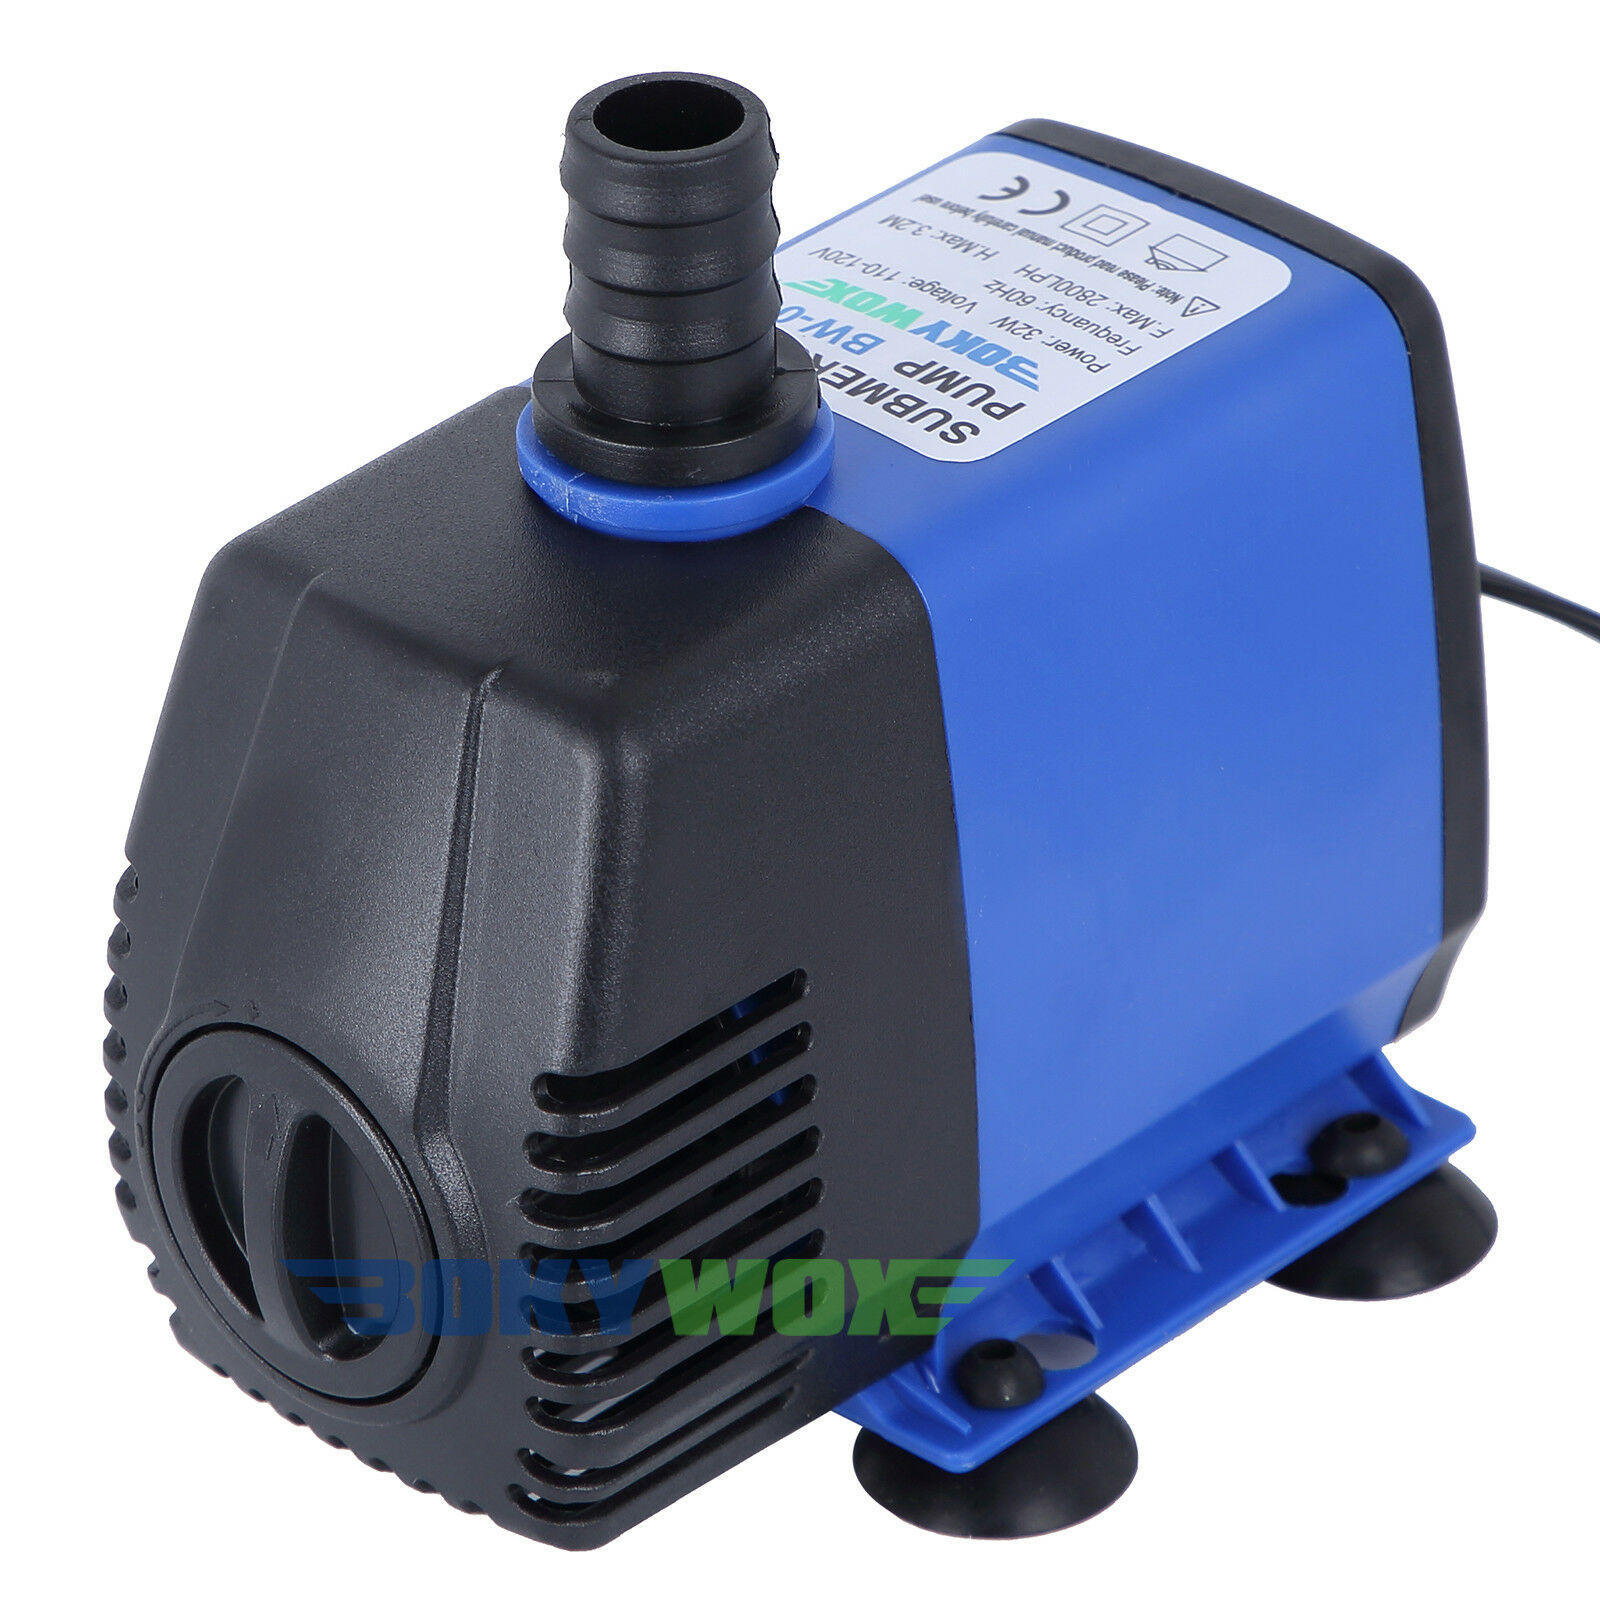 Submersible Water Pump 110V Fish Tank Pond Fountain Hydroponic 32W,792.5GPH